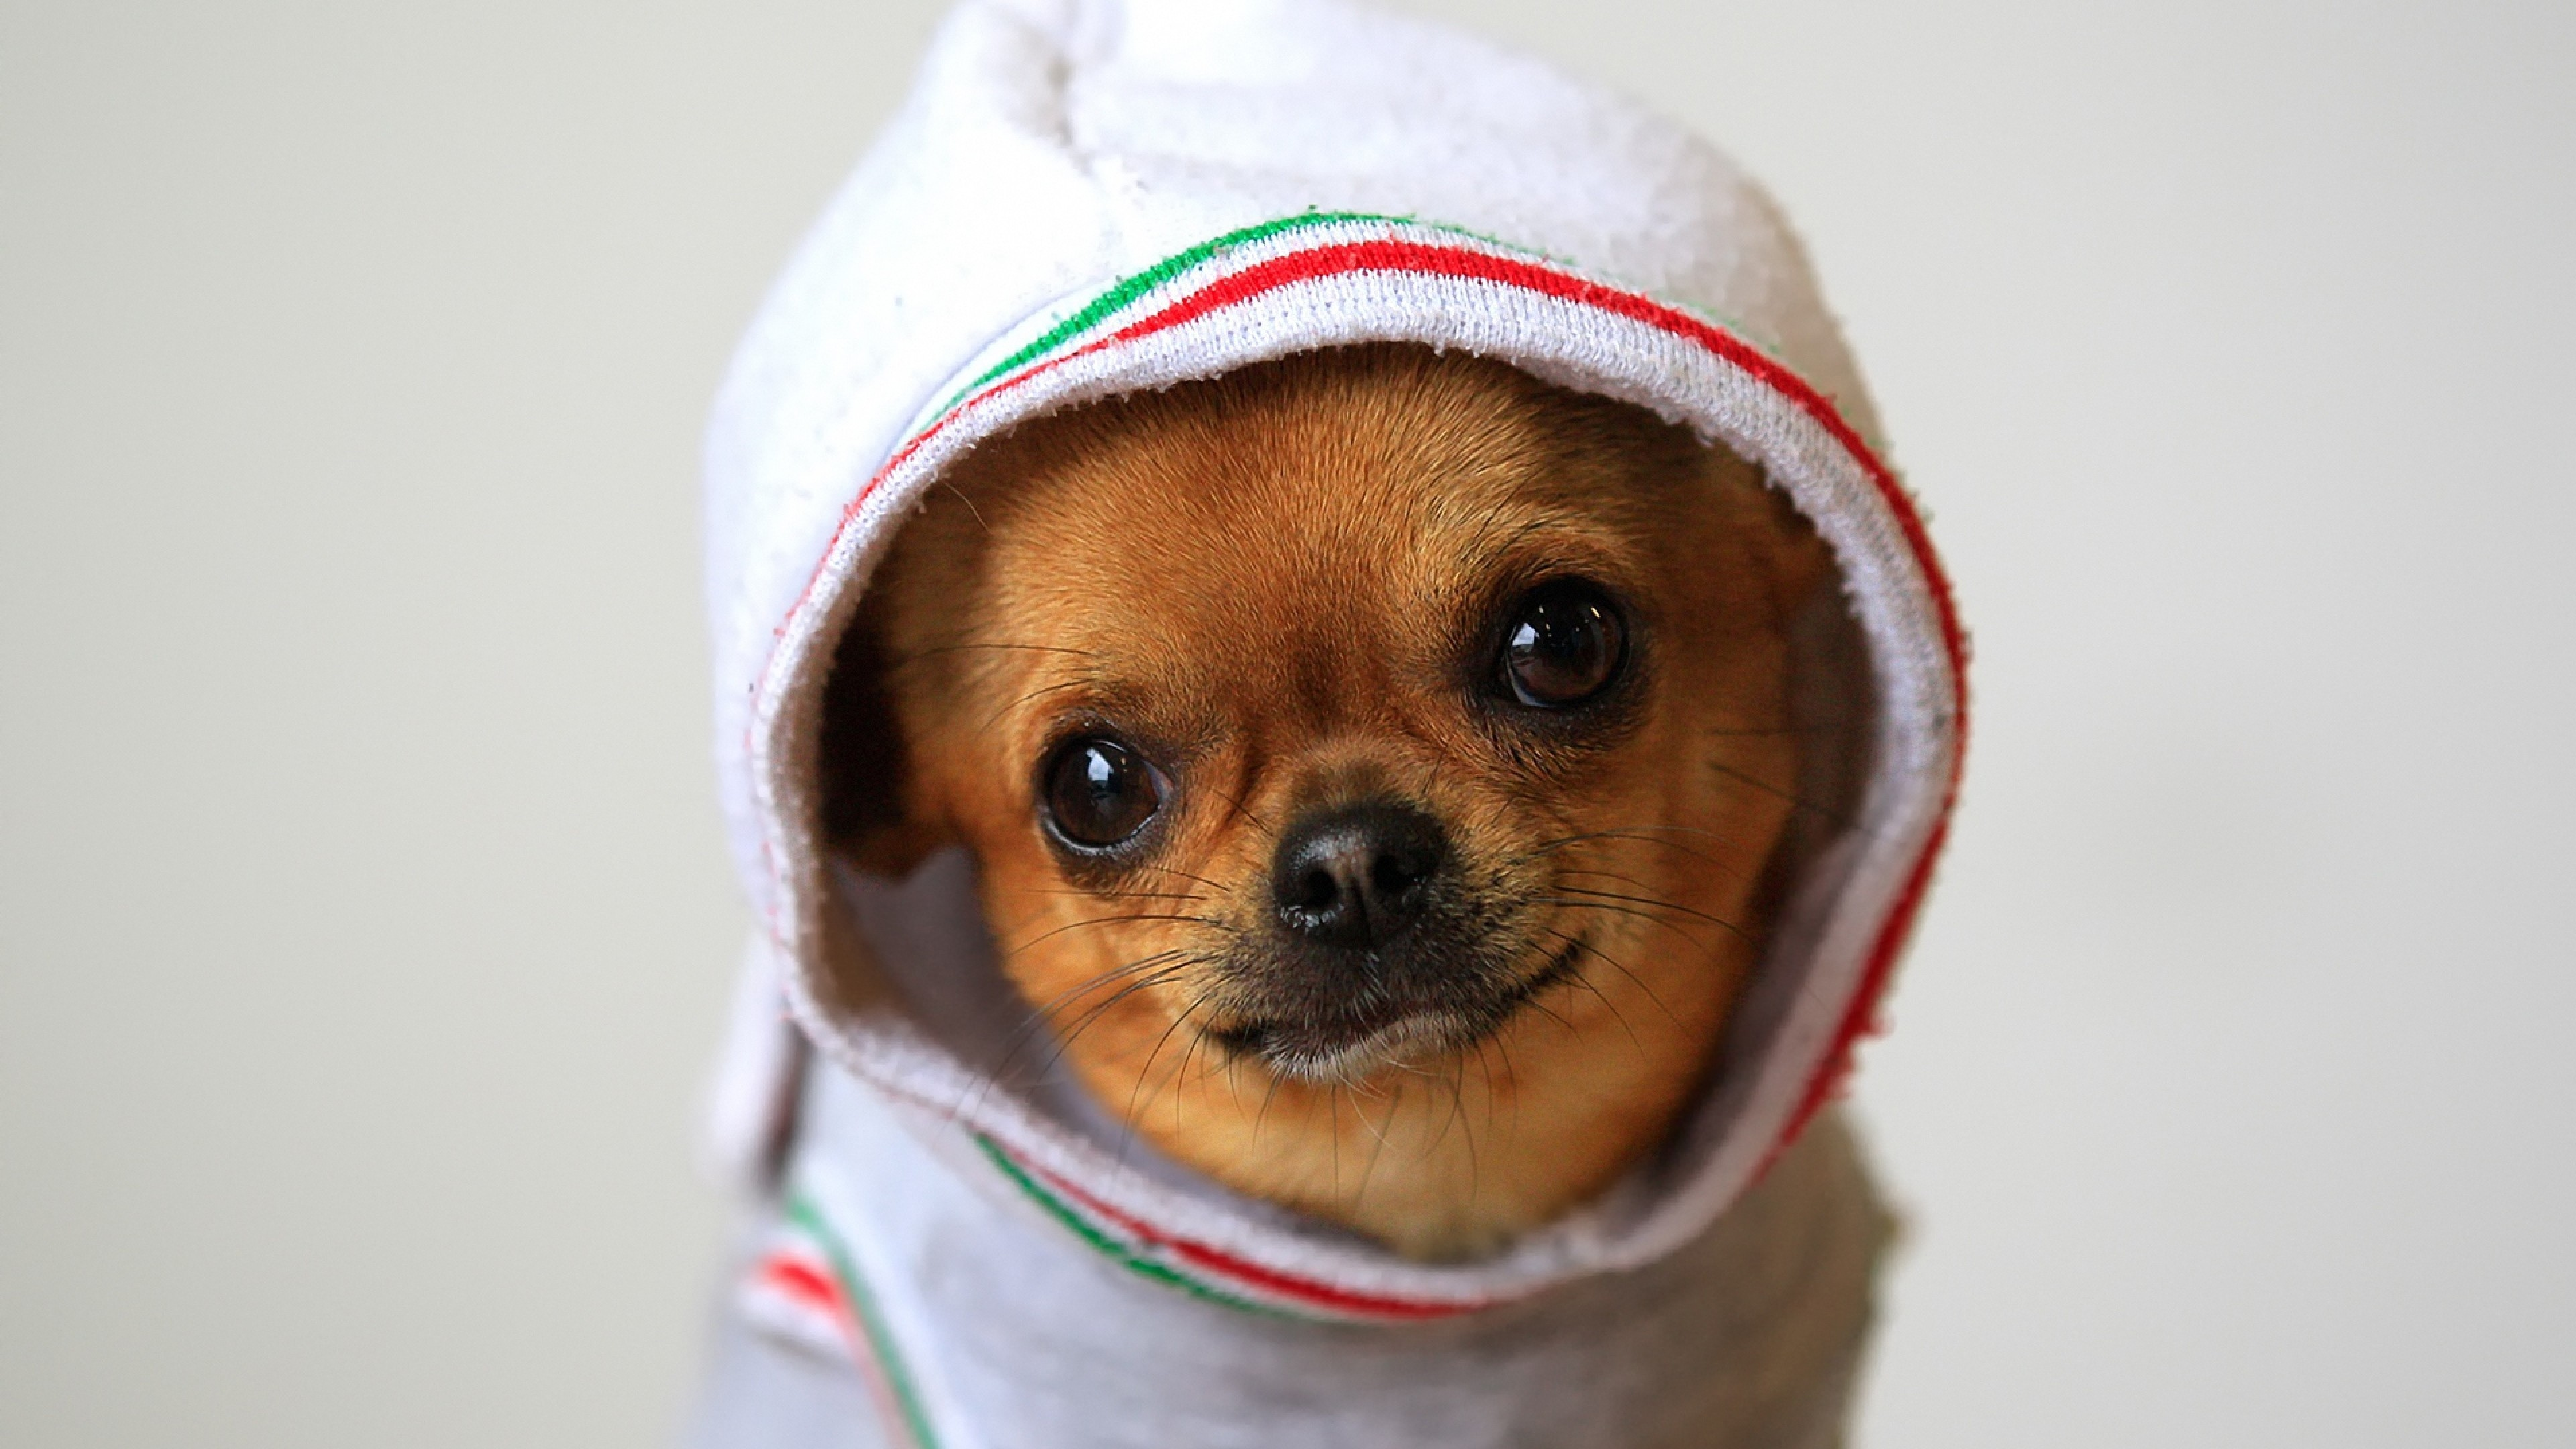 Wallpaper dog, chihuahua, puppy, clothing, costume